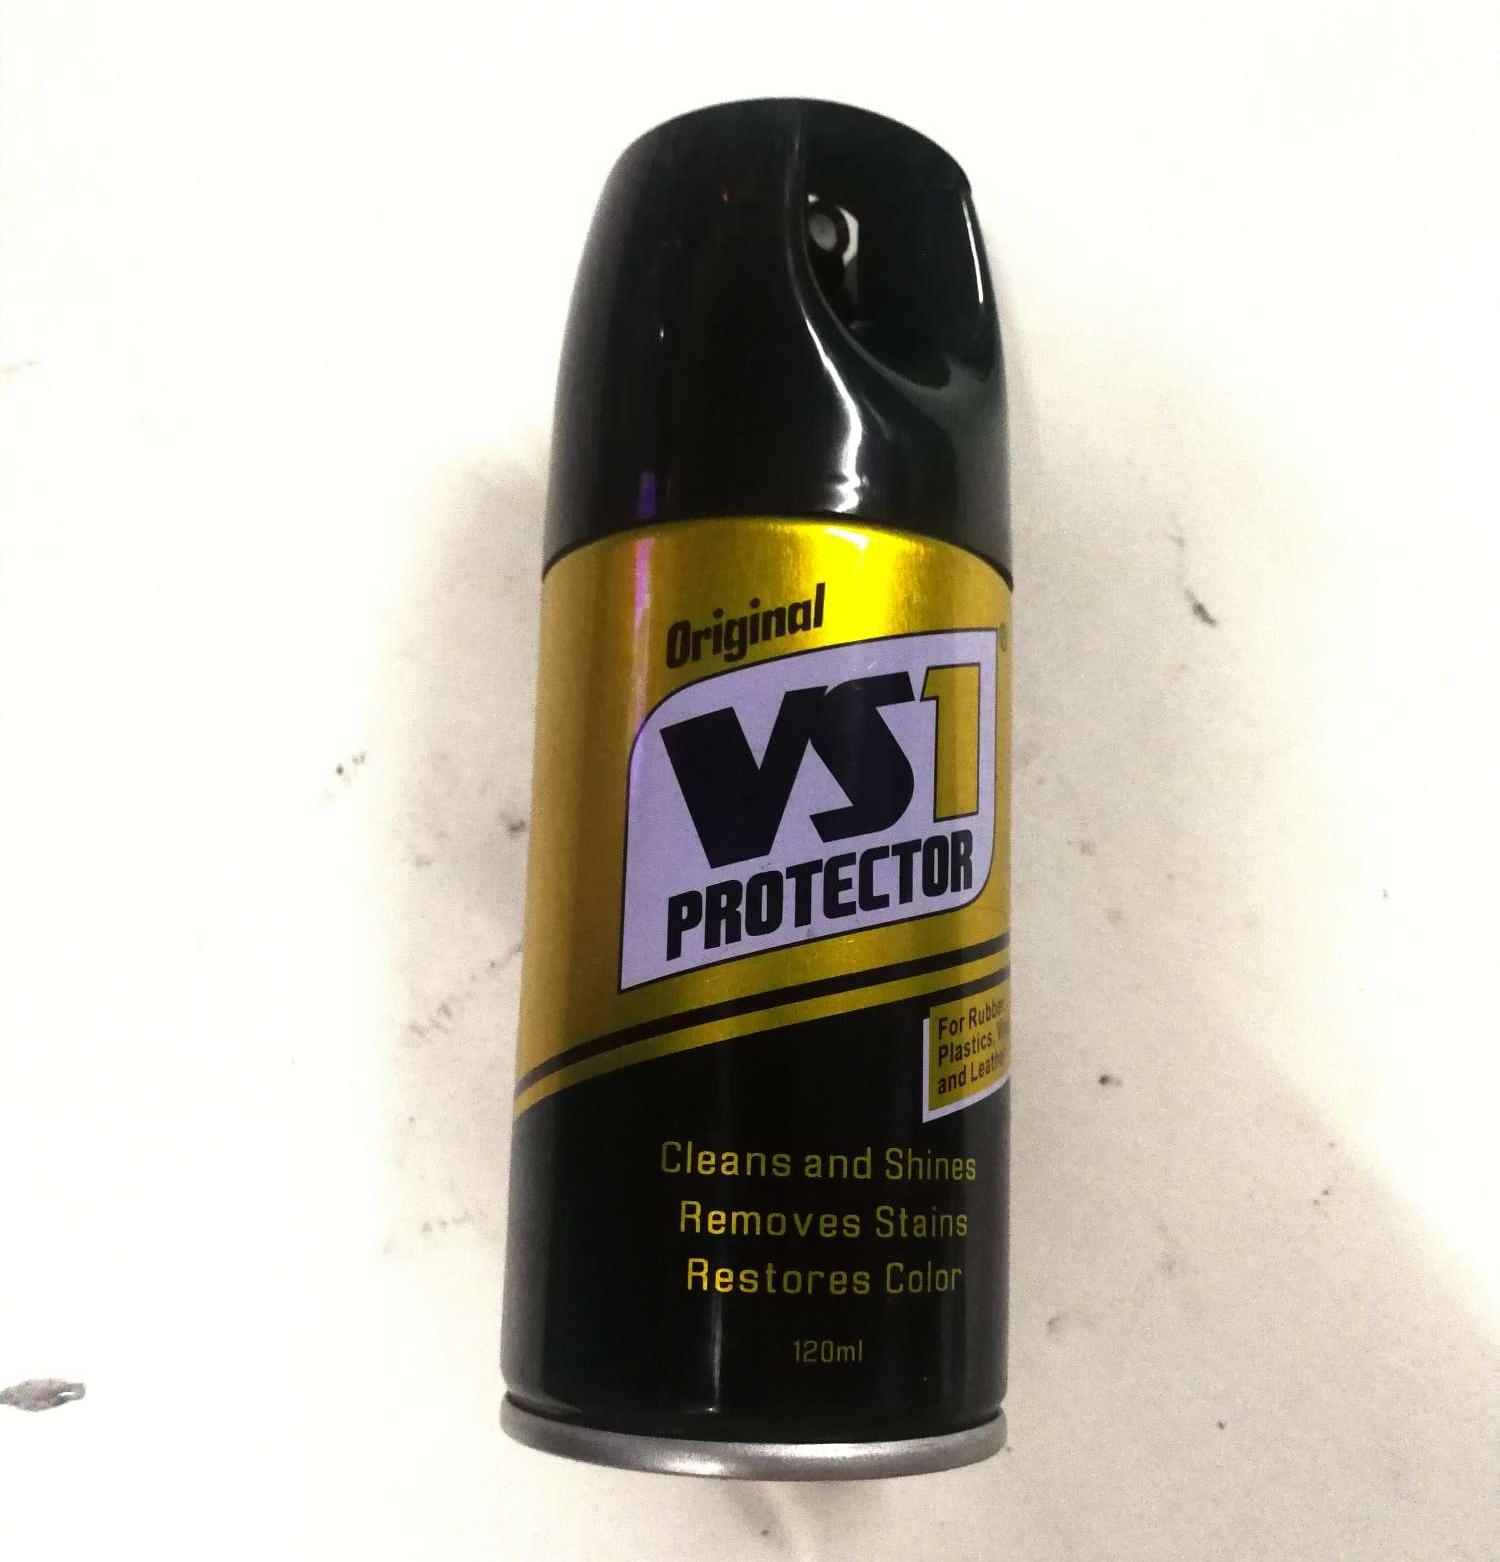 Vs1 Protector 120ml By Md3 Auto Supply.